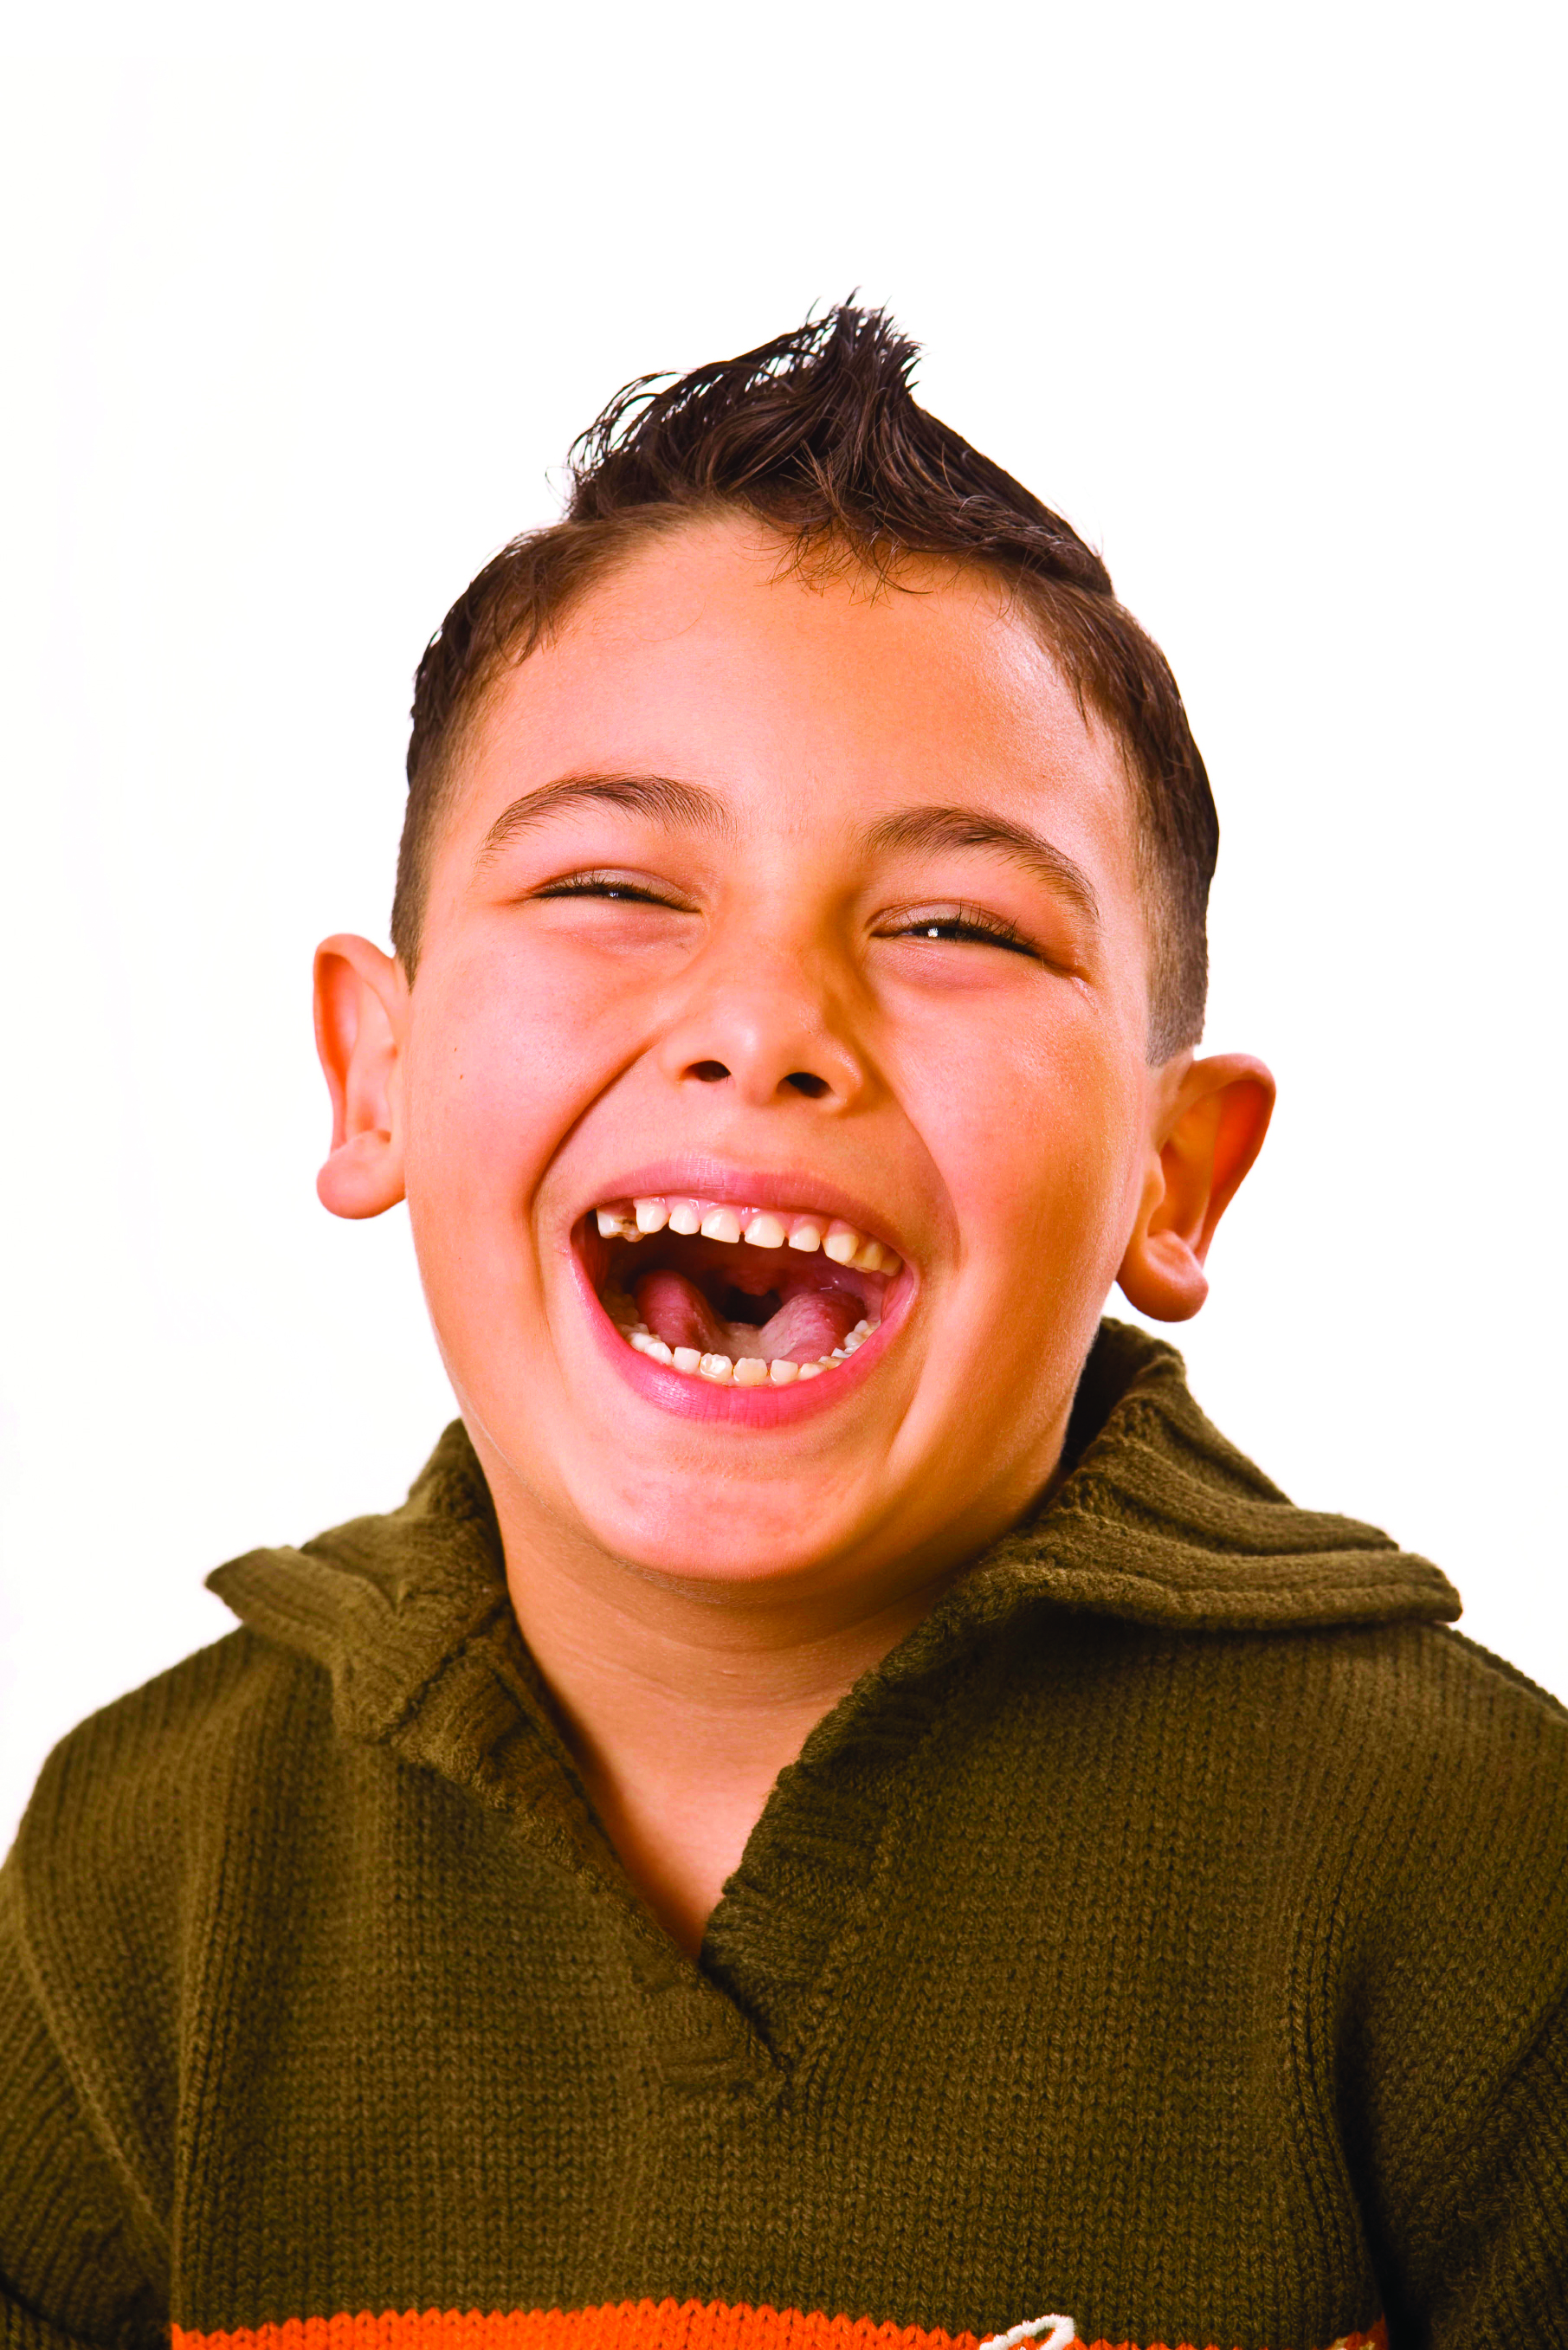 Laughingboy